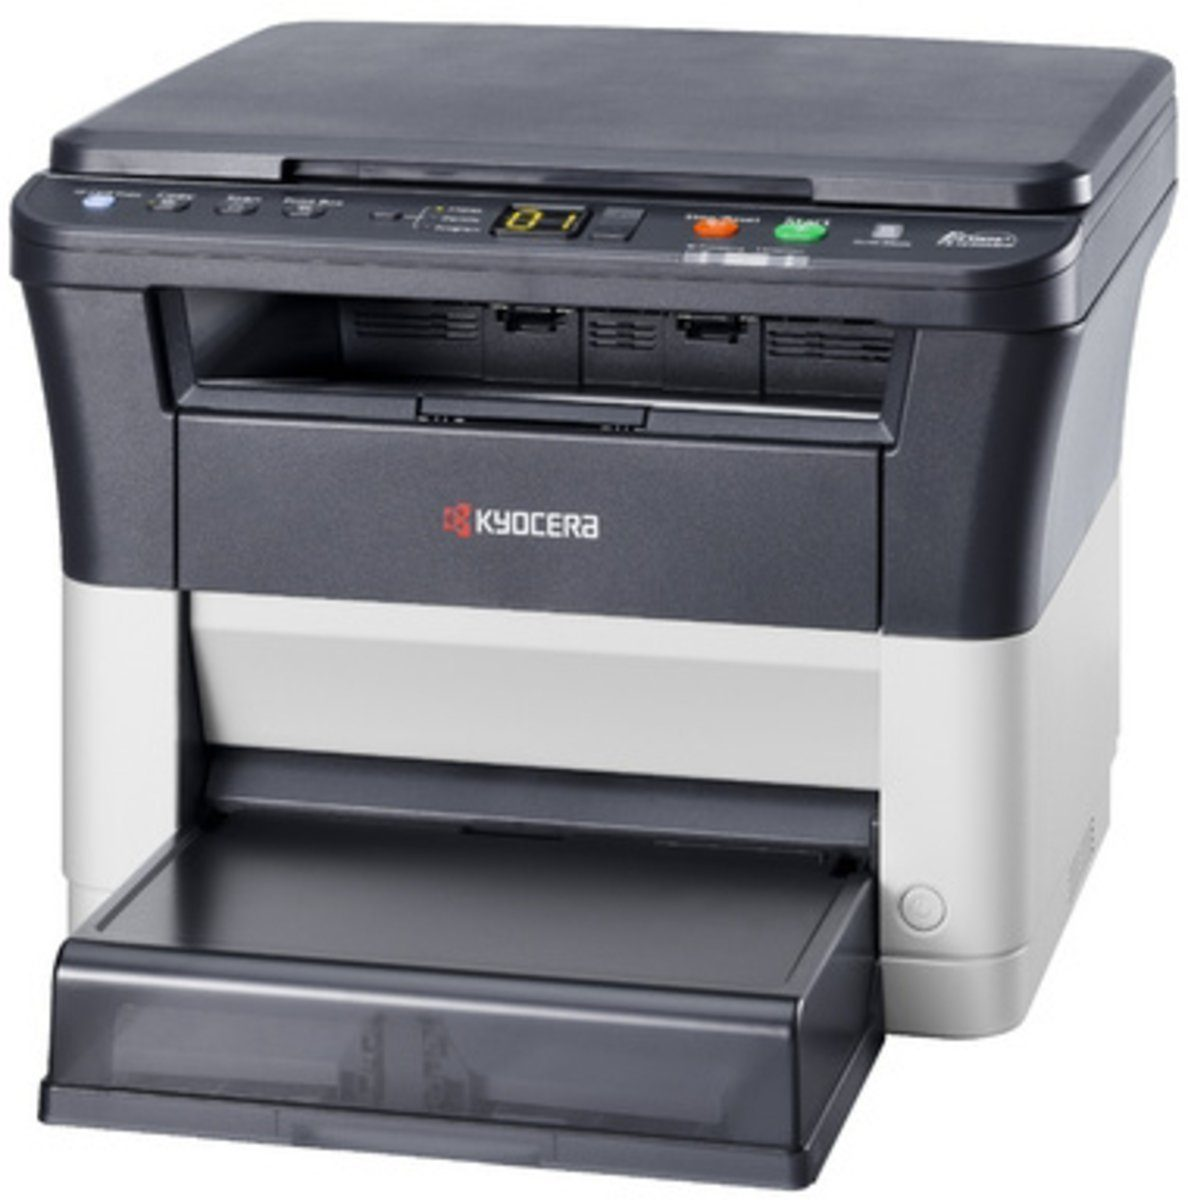 Kyocera Monolaser-Multifunktionsdrucker »FS-1220MFP 3in1«